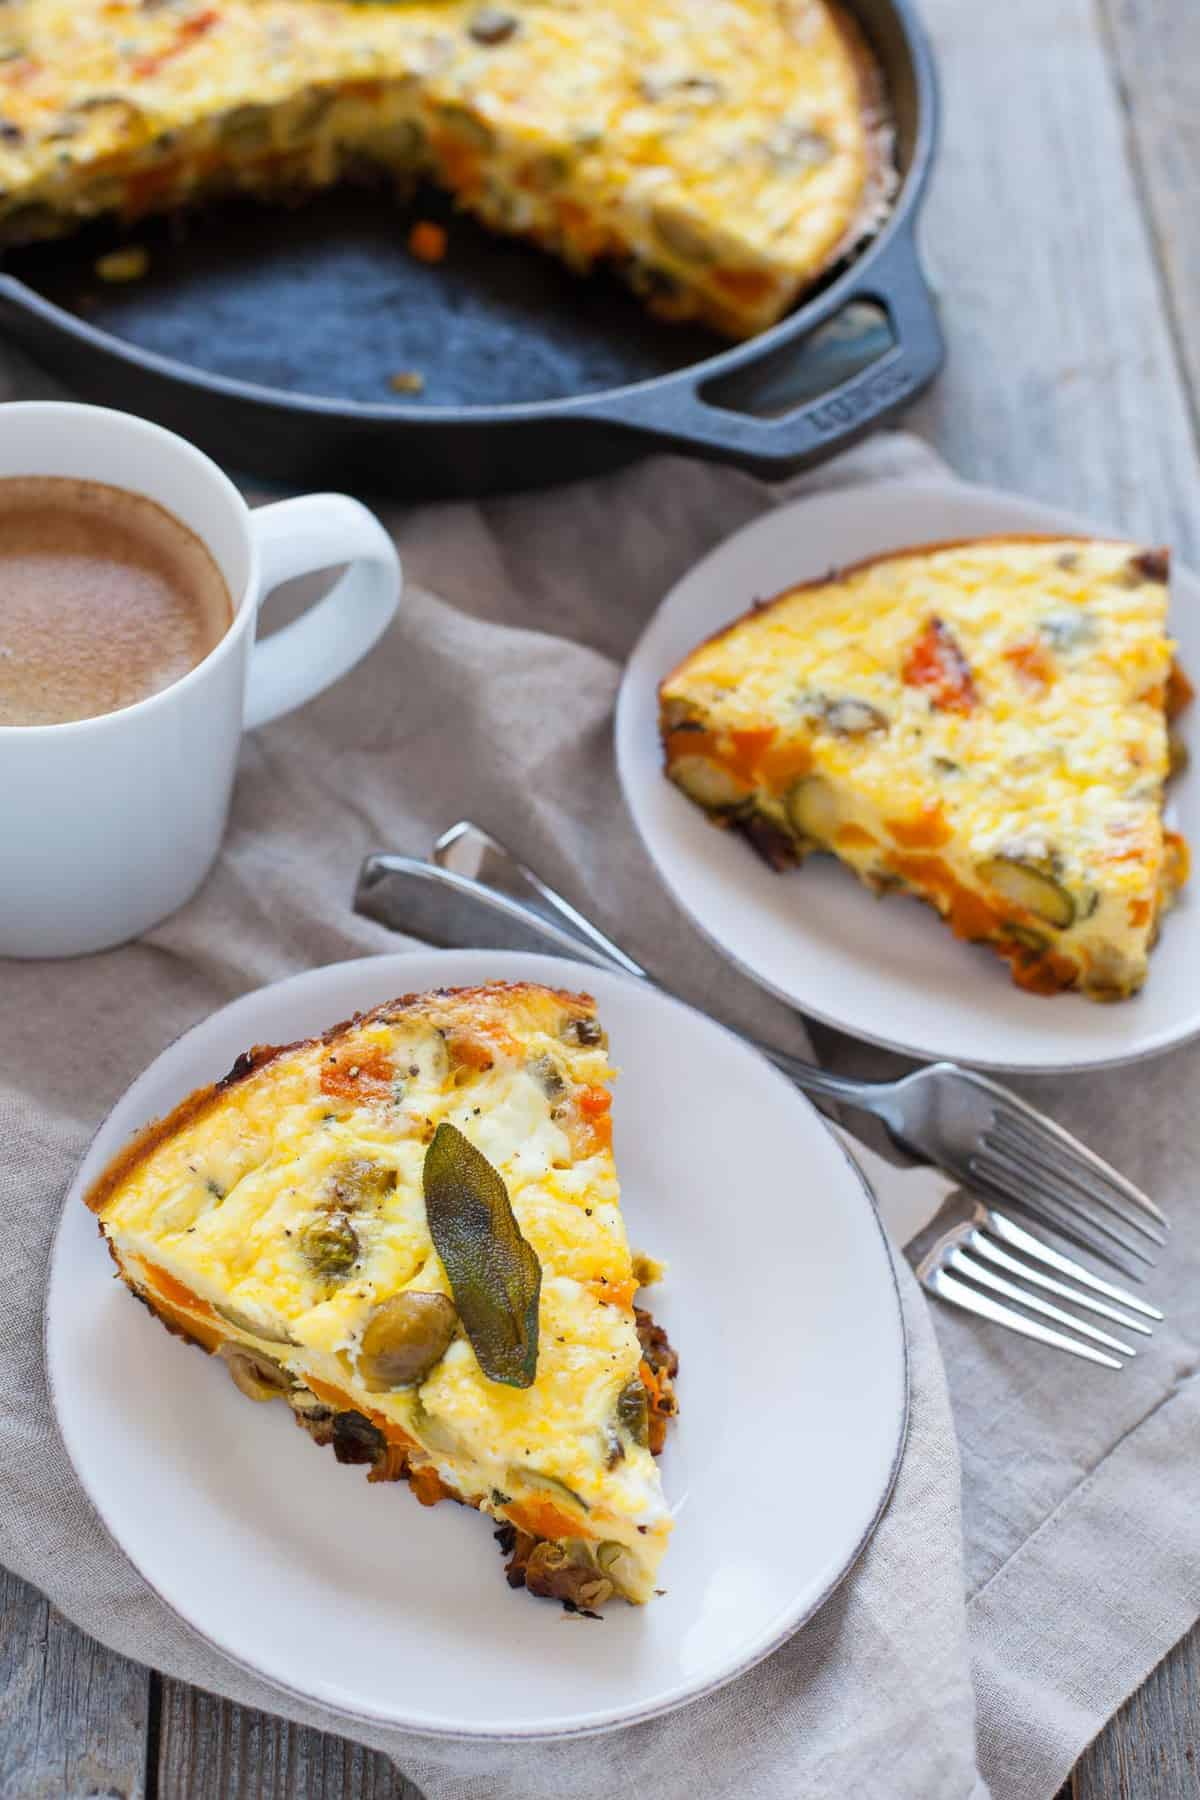 Searching for a post-holiday dish that will use up all your leftovers? Enter the Thanksgiving Breakfast frittata, packed with butternut squash, Brussels sprouts and sage. Perfect for the morning after Thanksgiving!